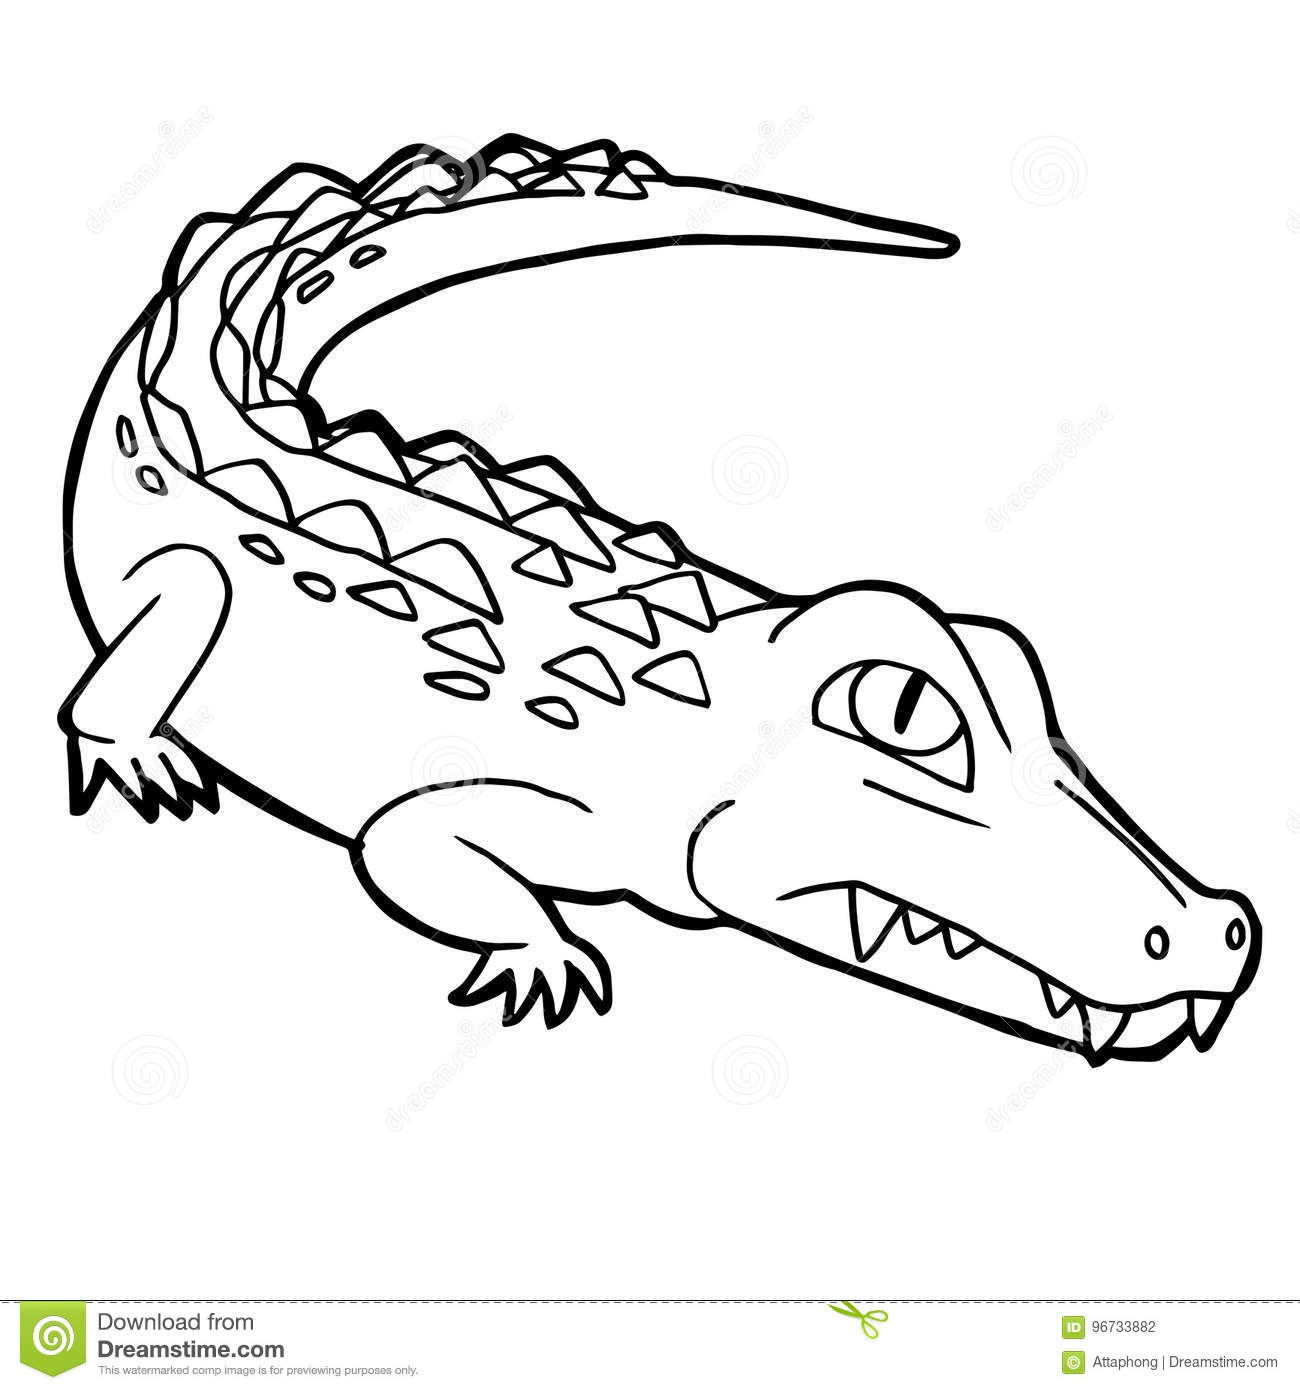 download cartoon cute crocodile coloring page vector stock vector illustration of cartoon caiman